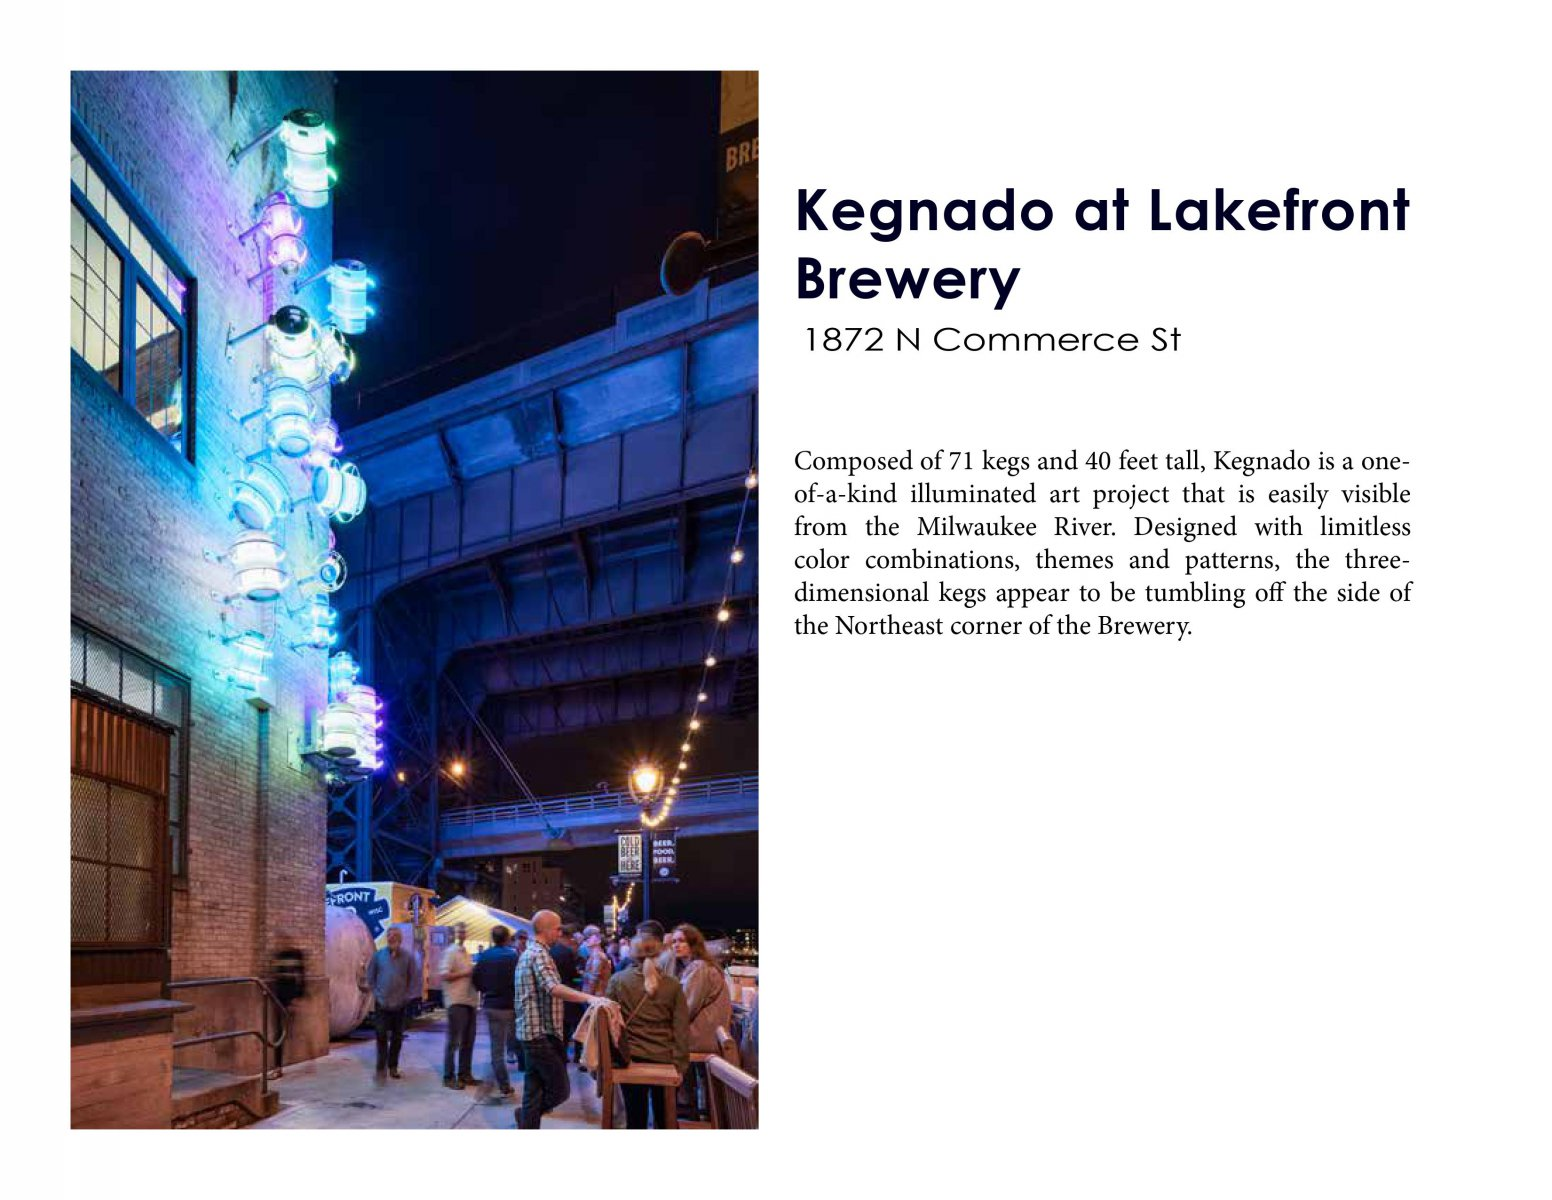 Kegnado at Lakefront Brewery